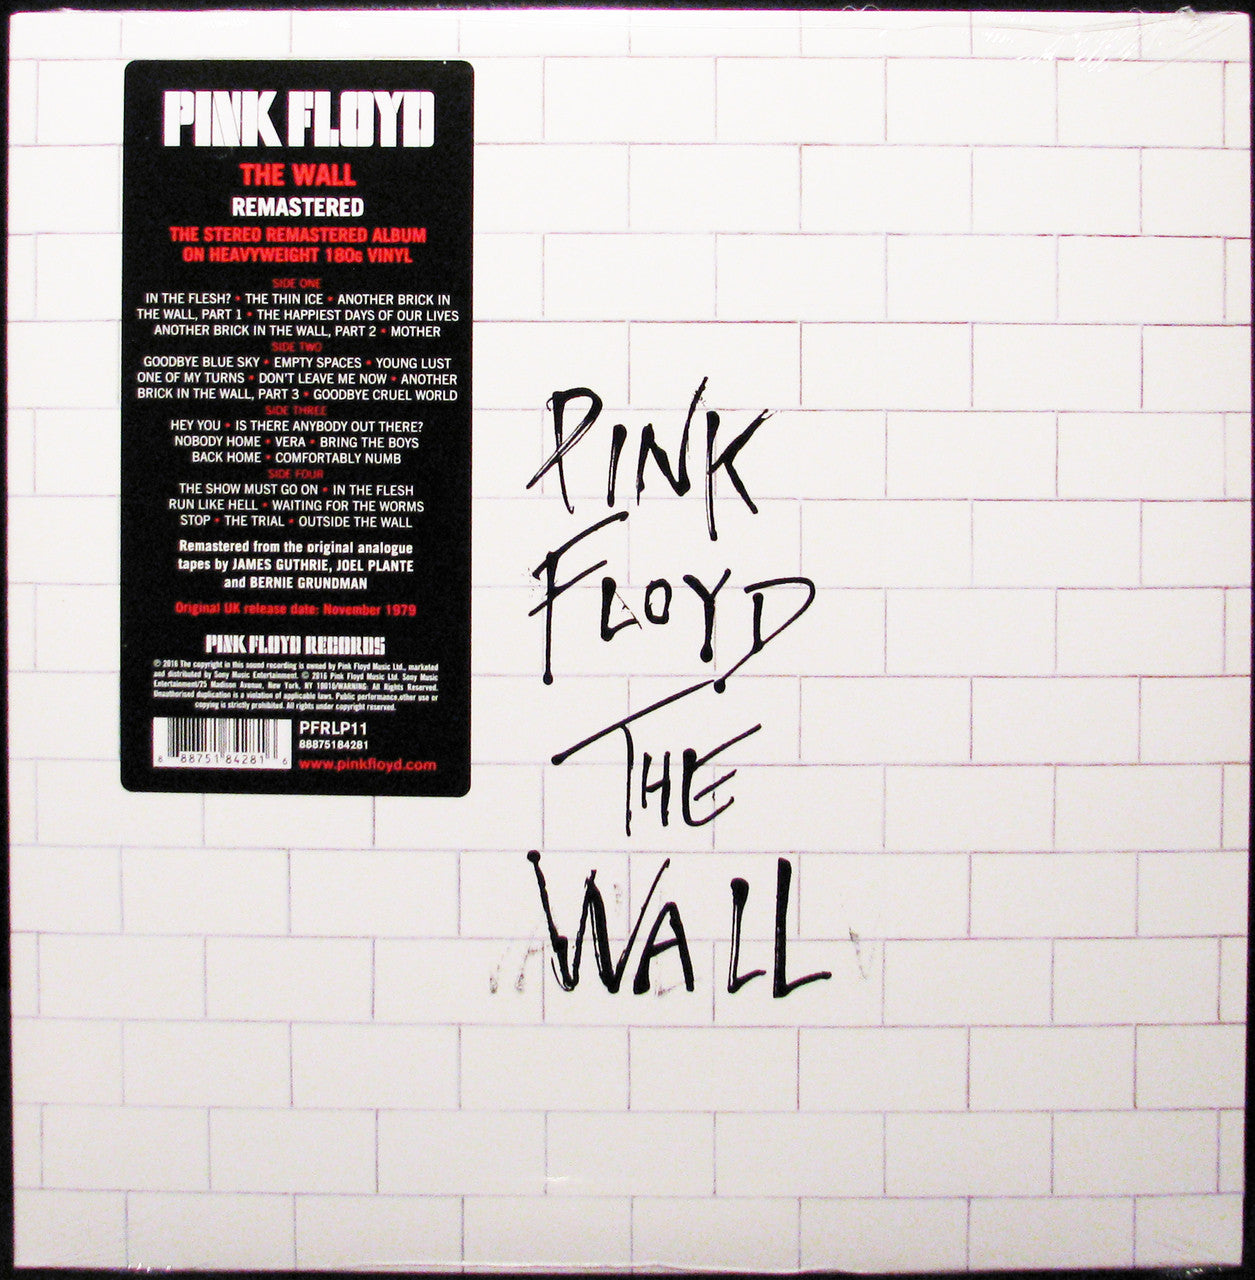 Pink Floyd - The Wall (Vinyl 2LP Record)